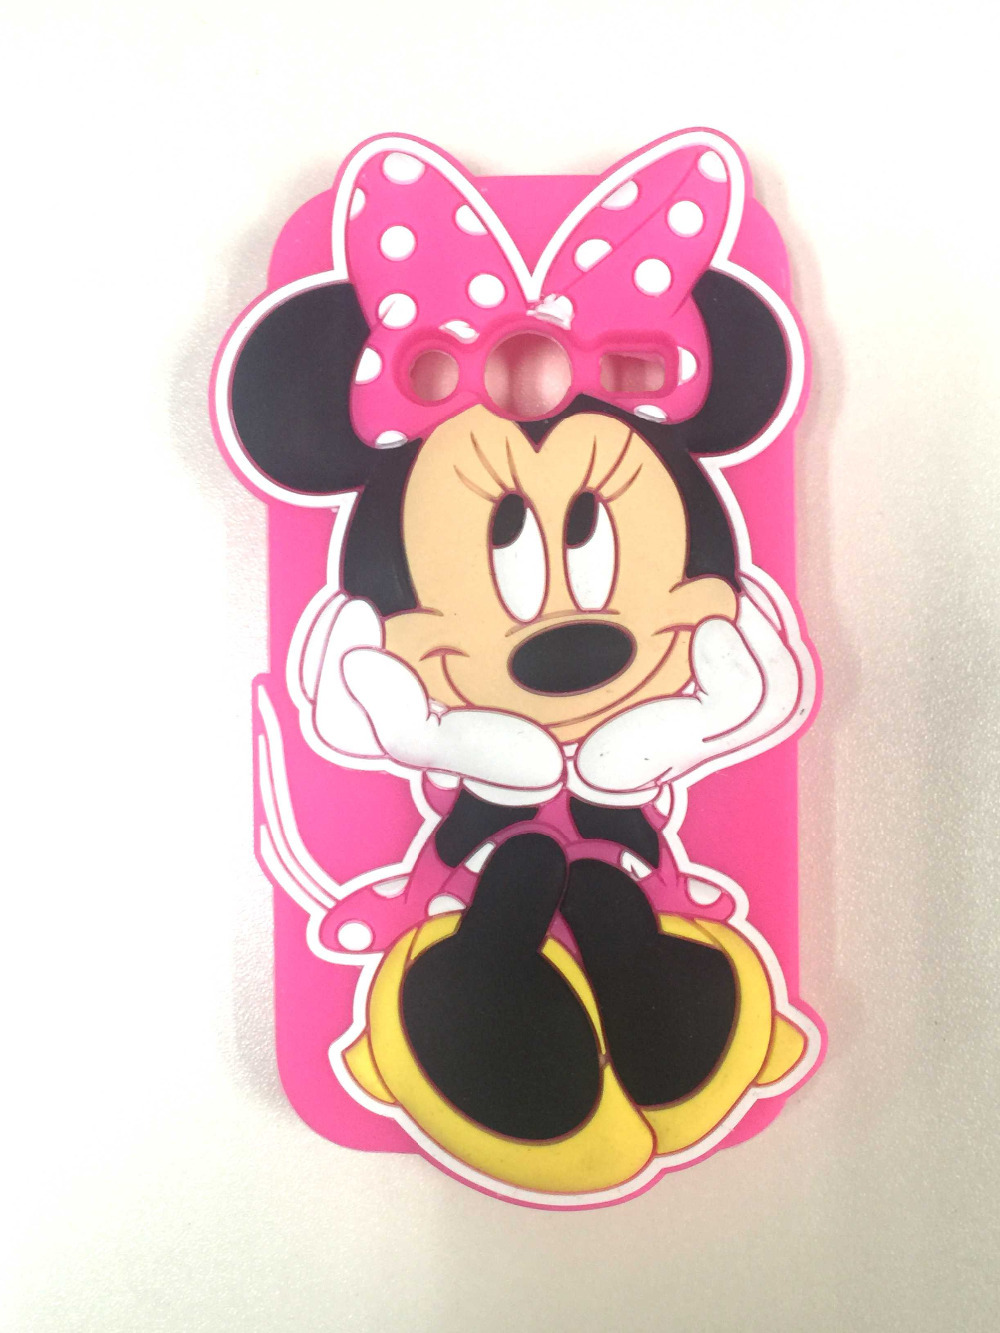 Samsung Galaxy A5 A5000 New Cartoon Fashion 3D Cute Minnie Rubber Soft Silicone Skin Cases Covers  -  All the Best Things store